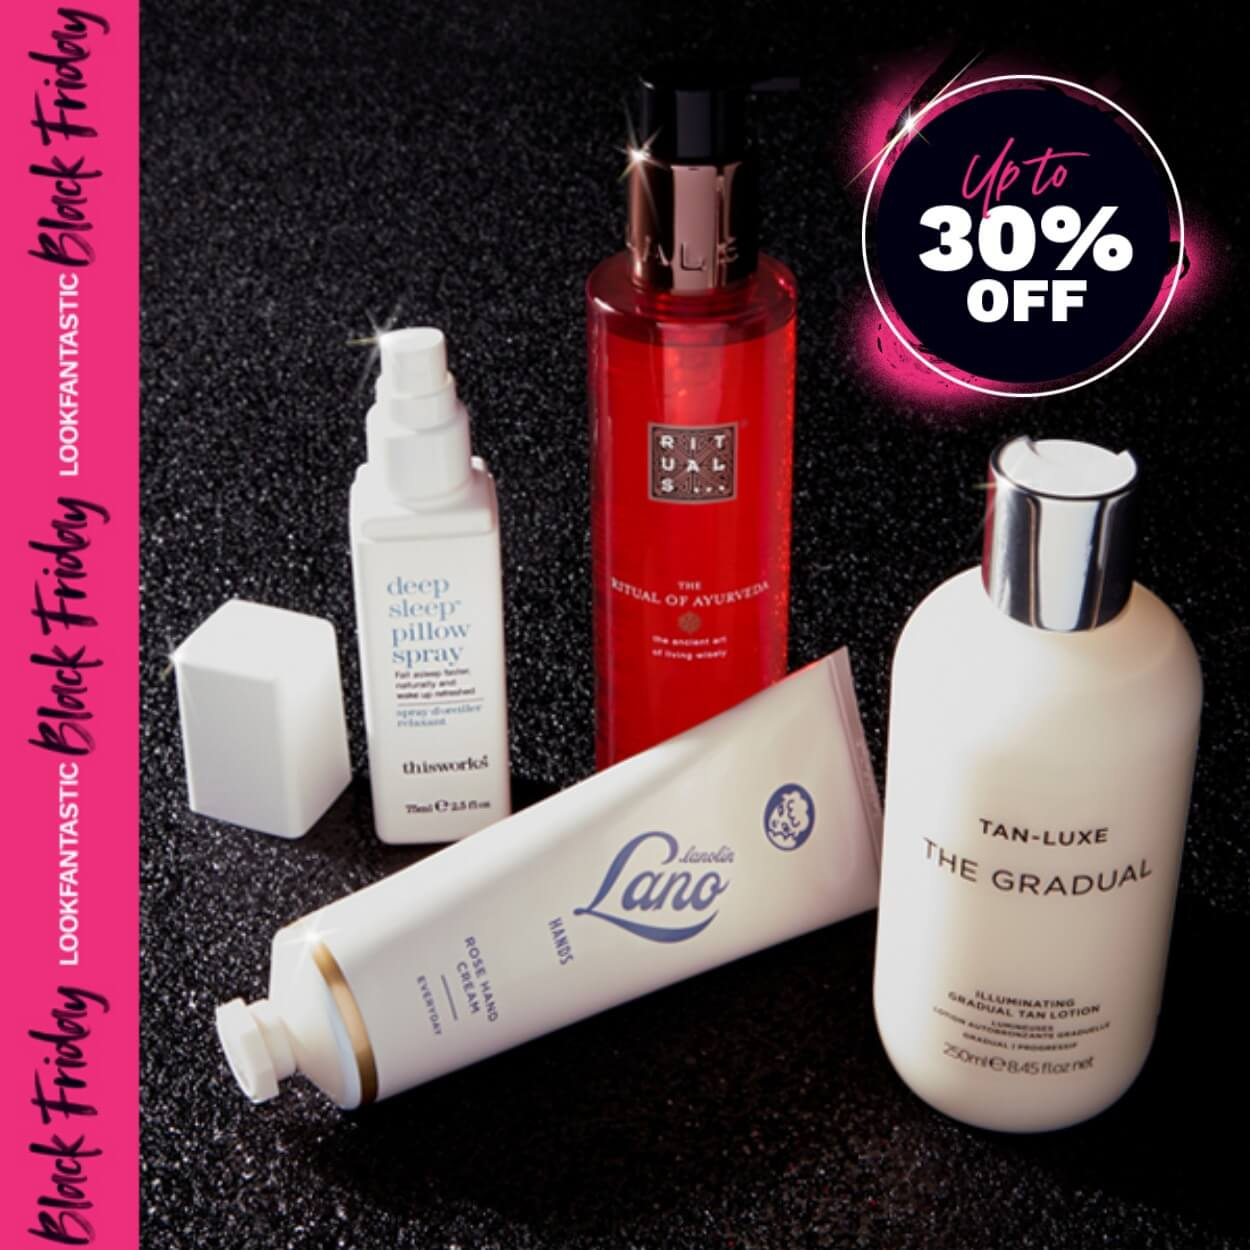 Save up to 30% on bodycare